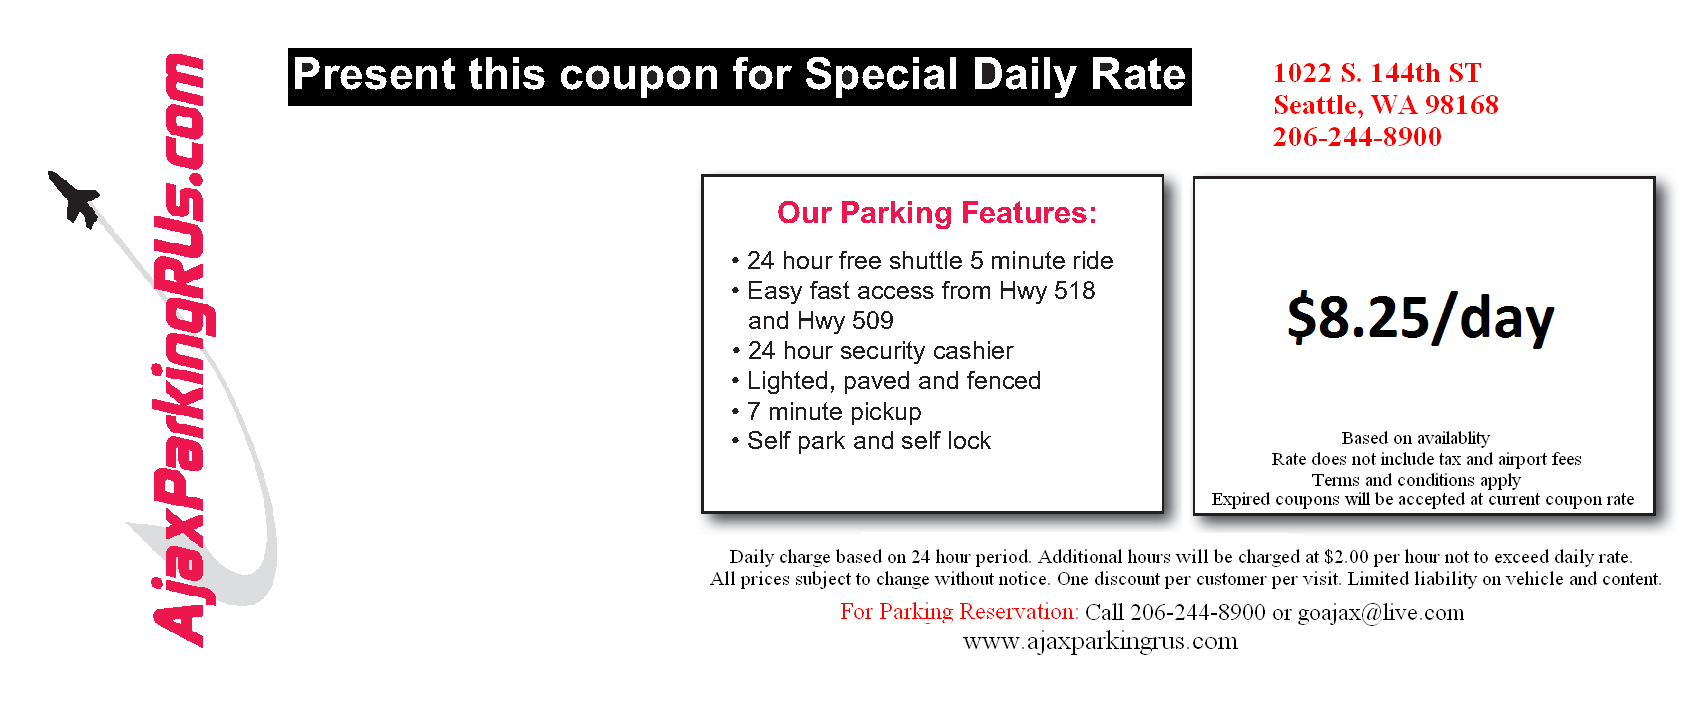 Discount coupons for seatac airport parking